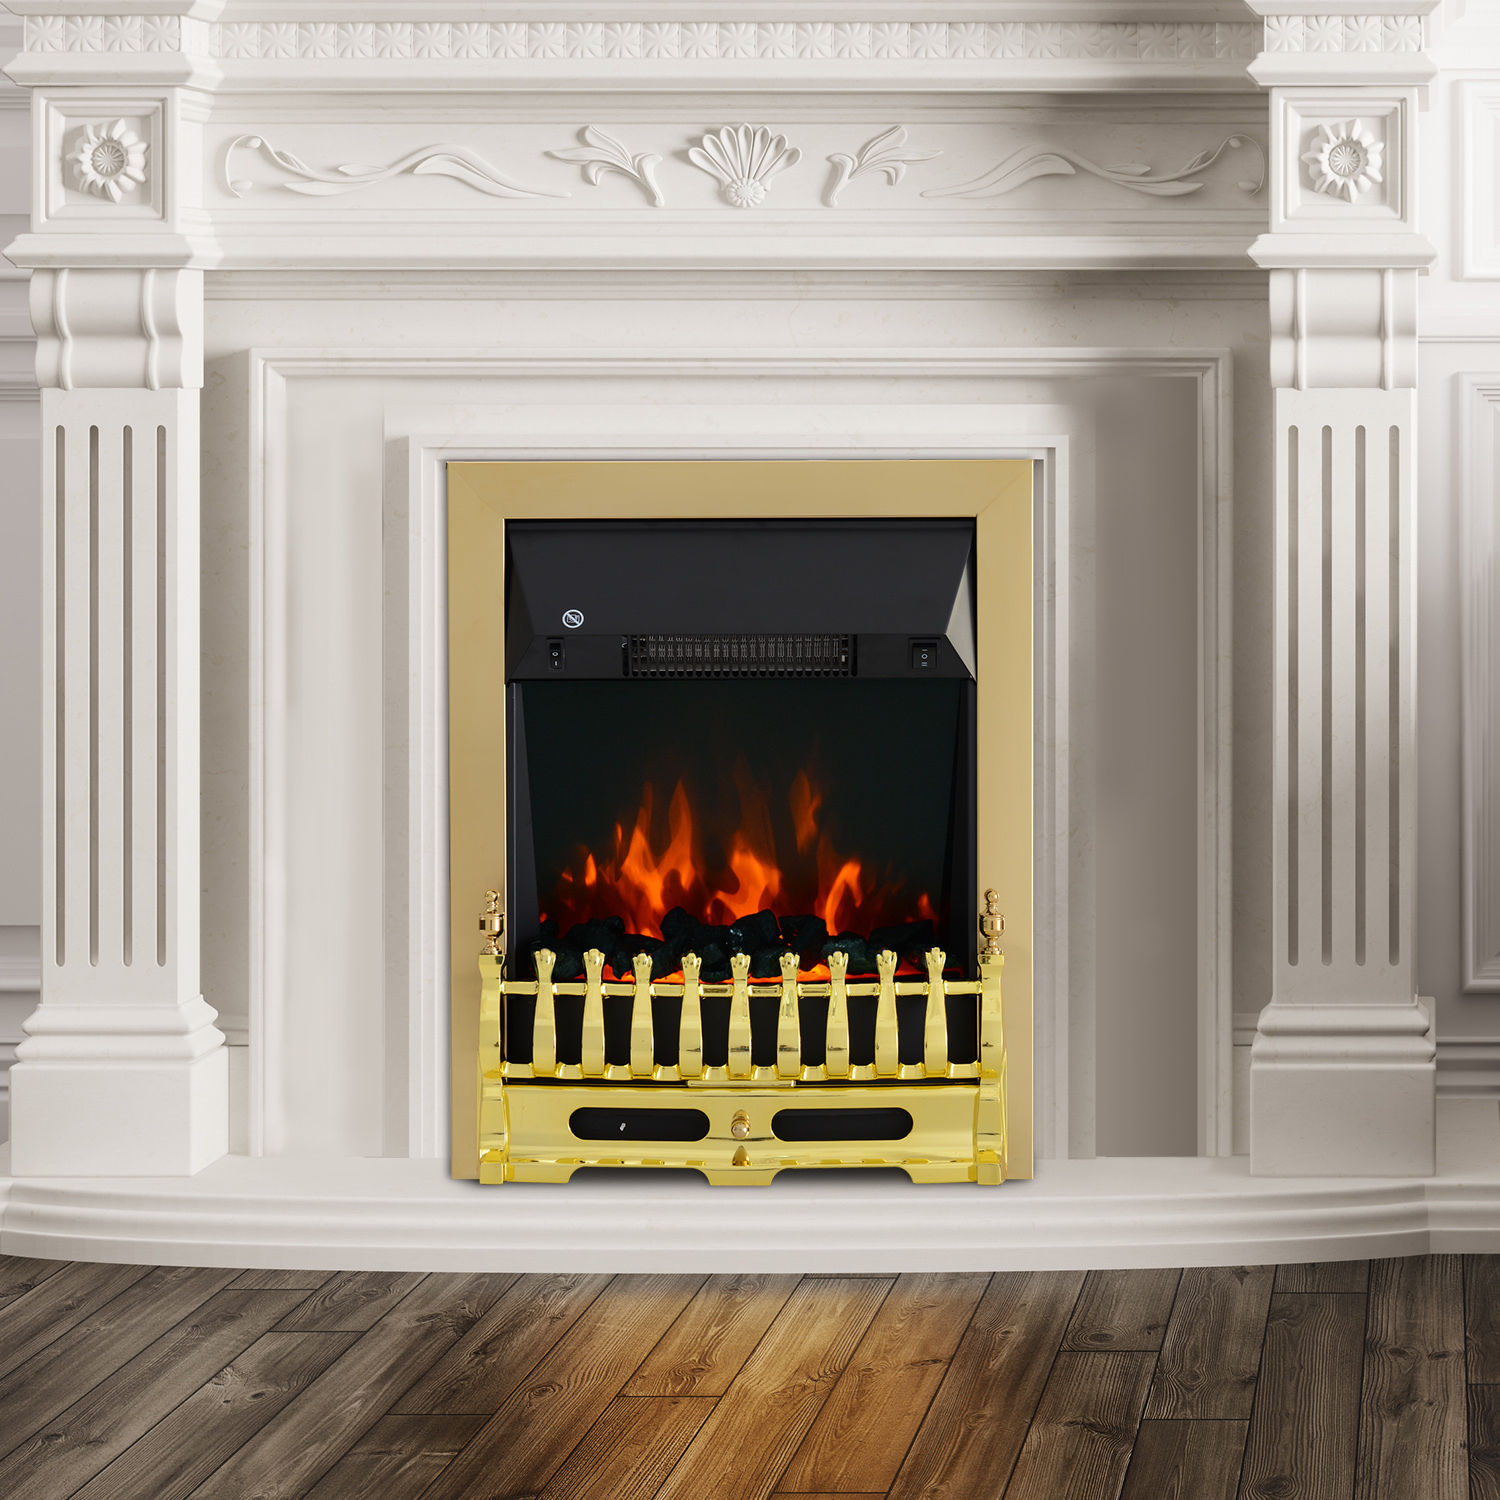 Image of £84.99 HOMCOM LED Flame Electric Fire Place-Golden / Fireplace Light Complete Place Heating Indoor Heater Coal Burning Effect Heat 2000W Max Modern 1 & 2KW Surround Pebble 820-042 5055974831995